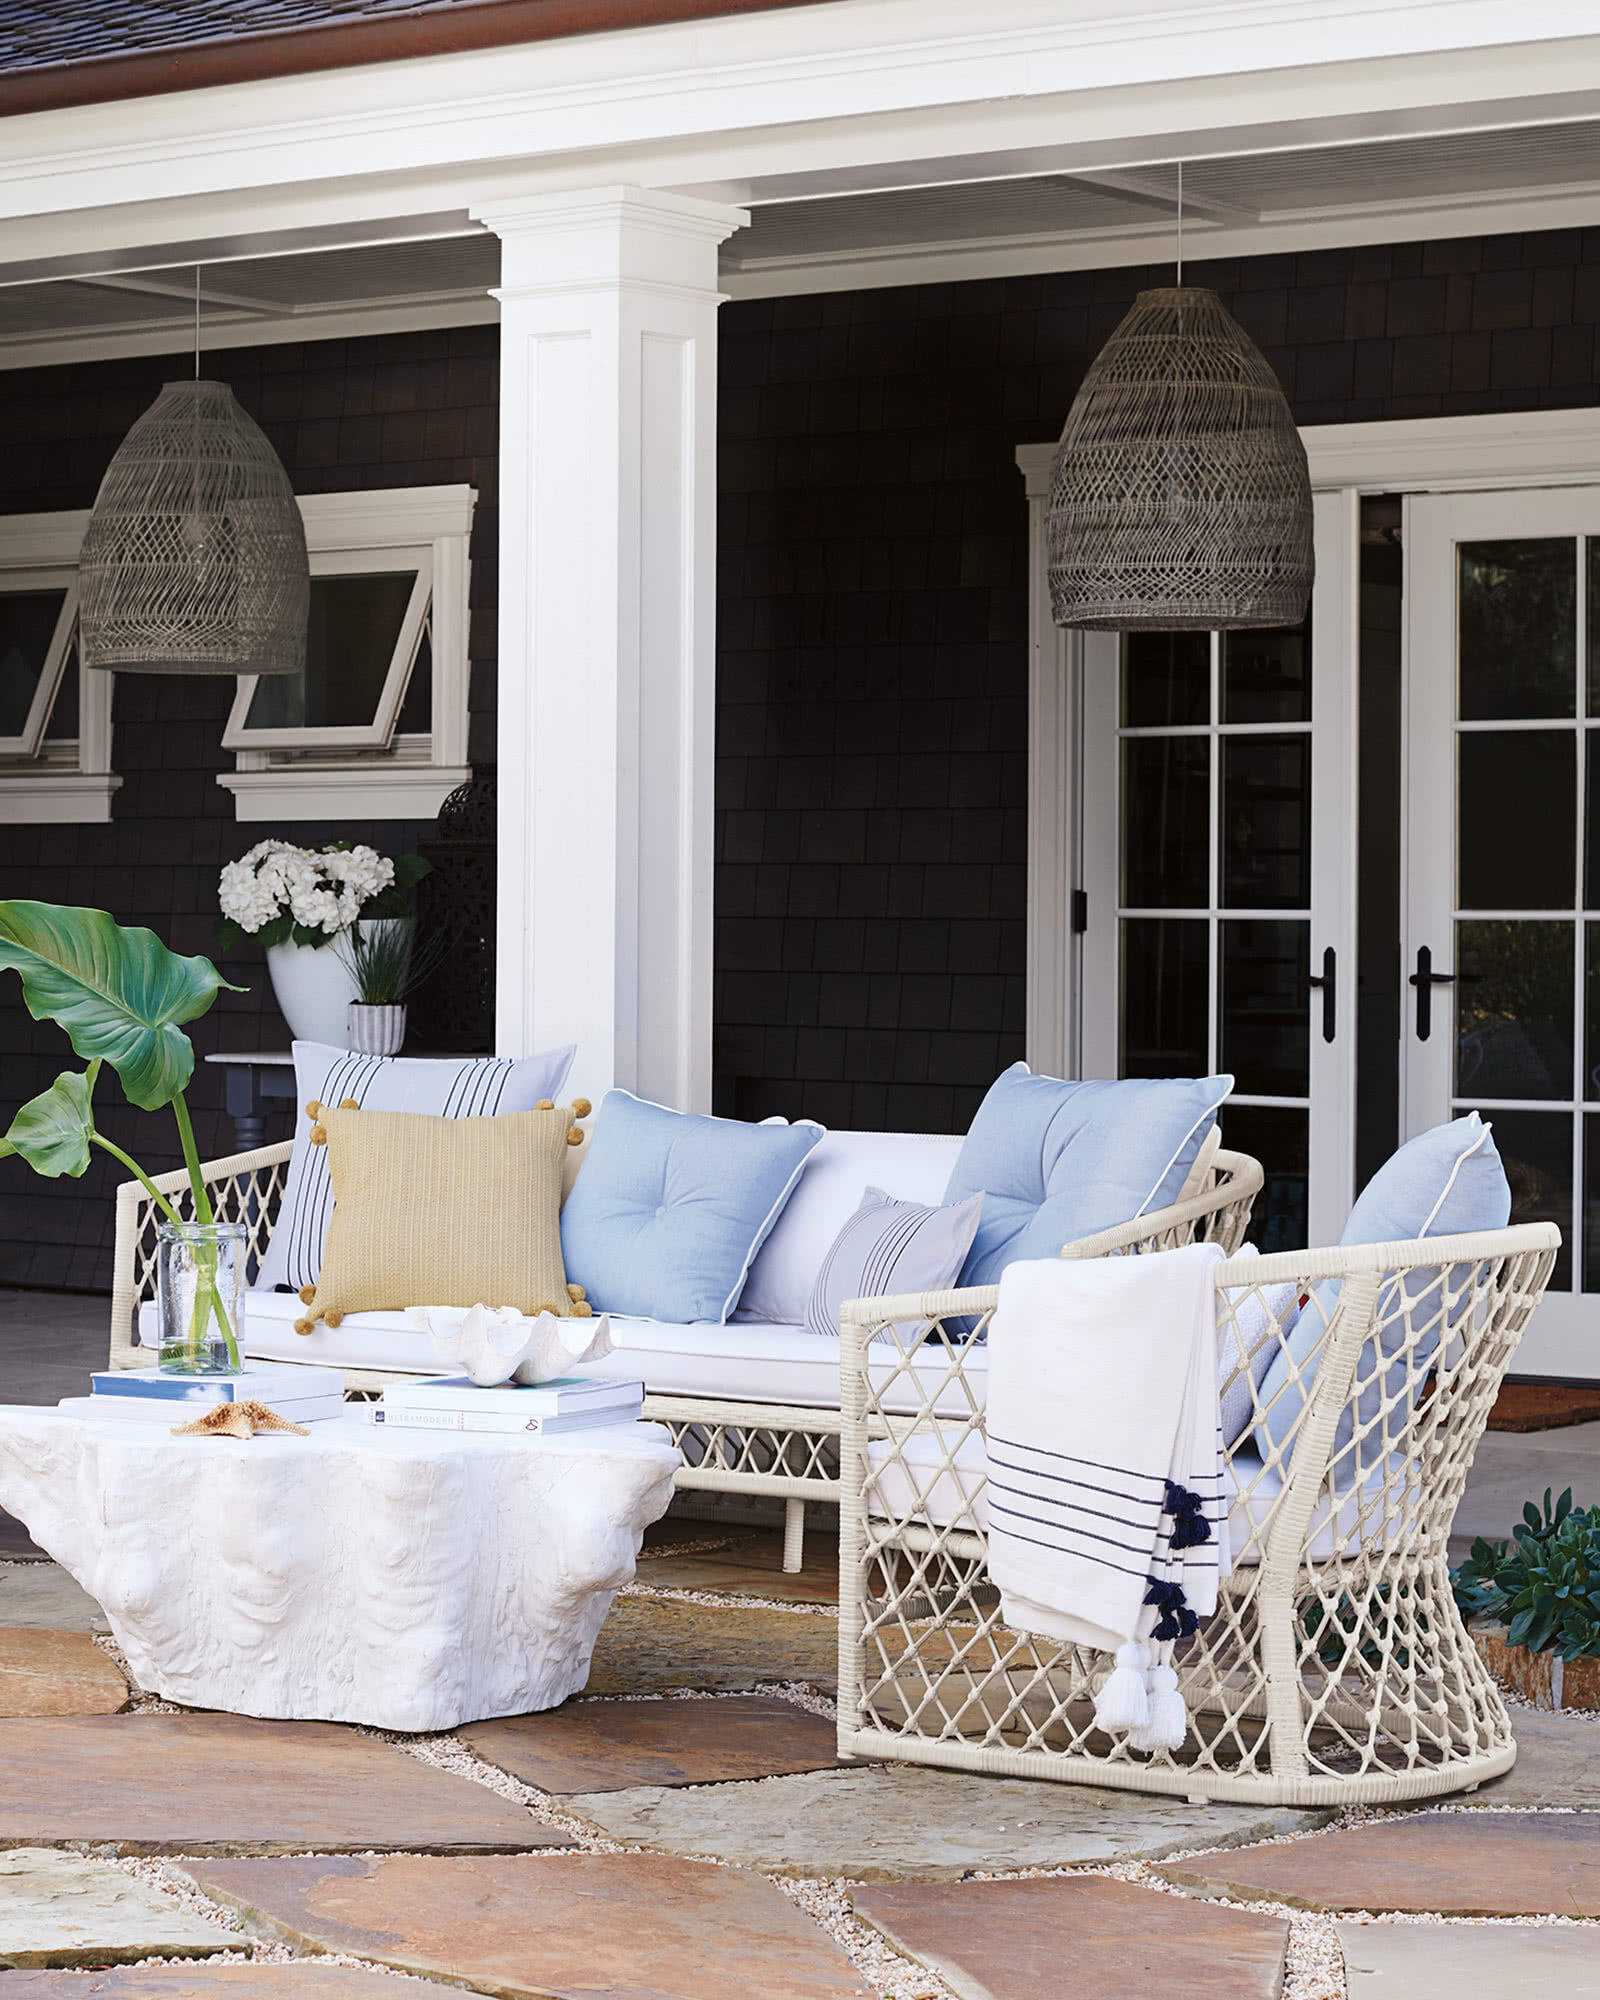 Outdoor patio seating area with two large serena and lily bell pendents and white wicker furniture with blue toss pillows